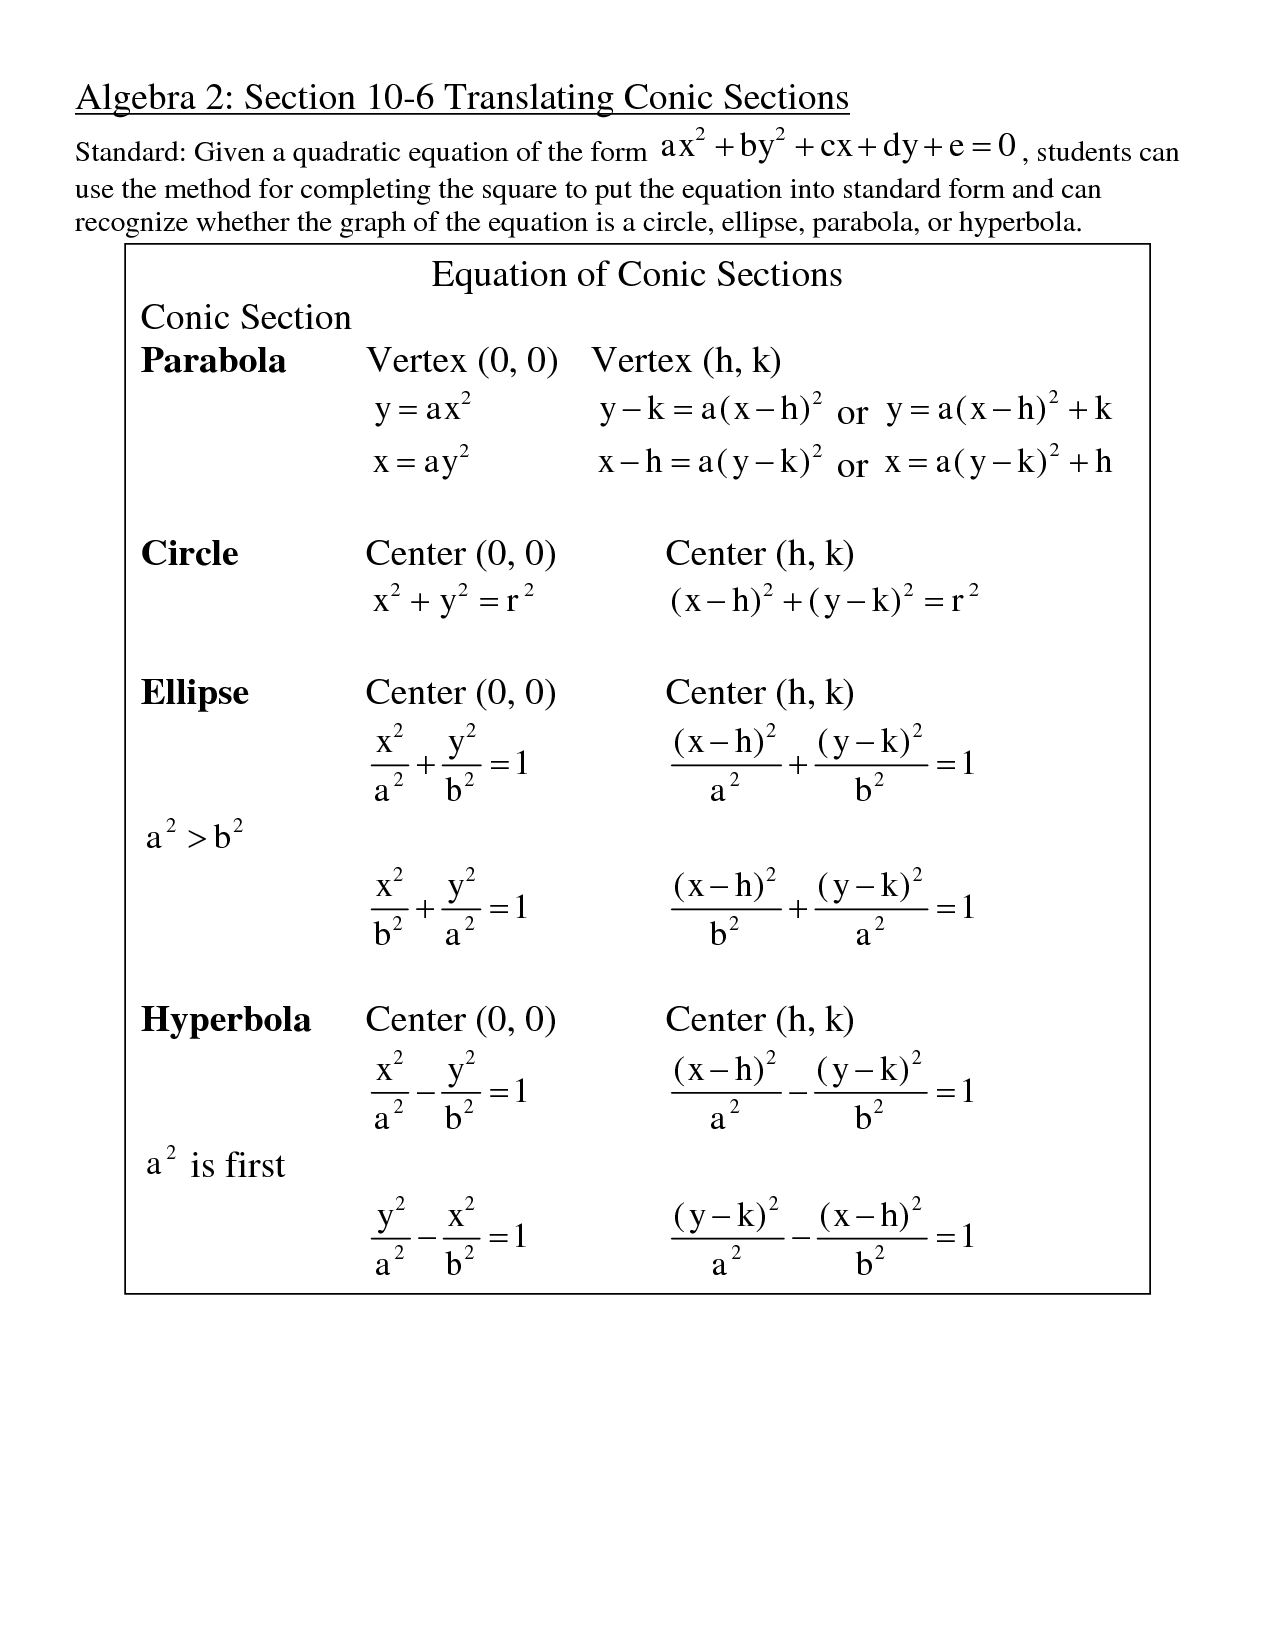 2013 2014 algebra 2 mr atterberrys homepage download file falaconquin